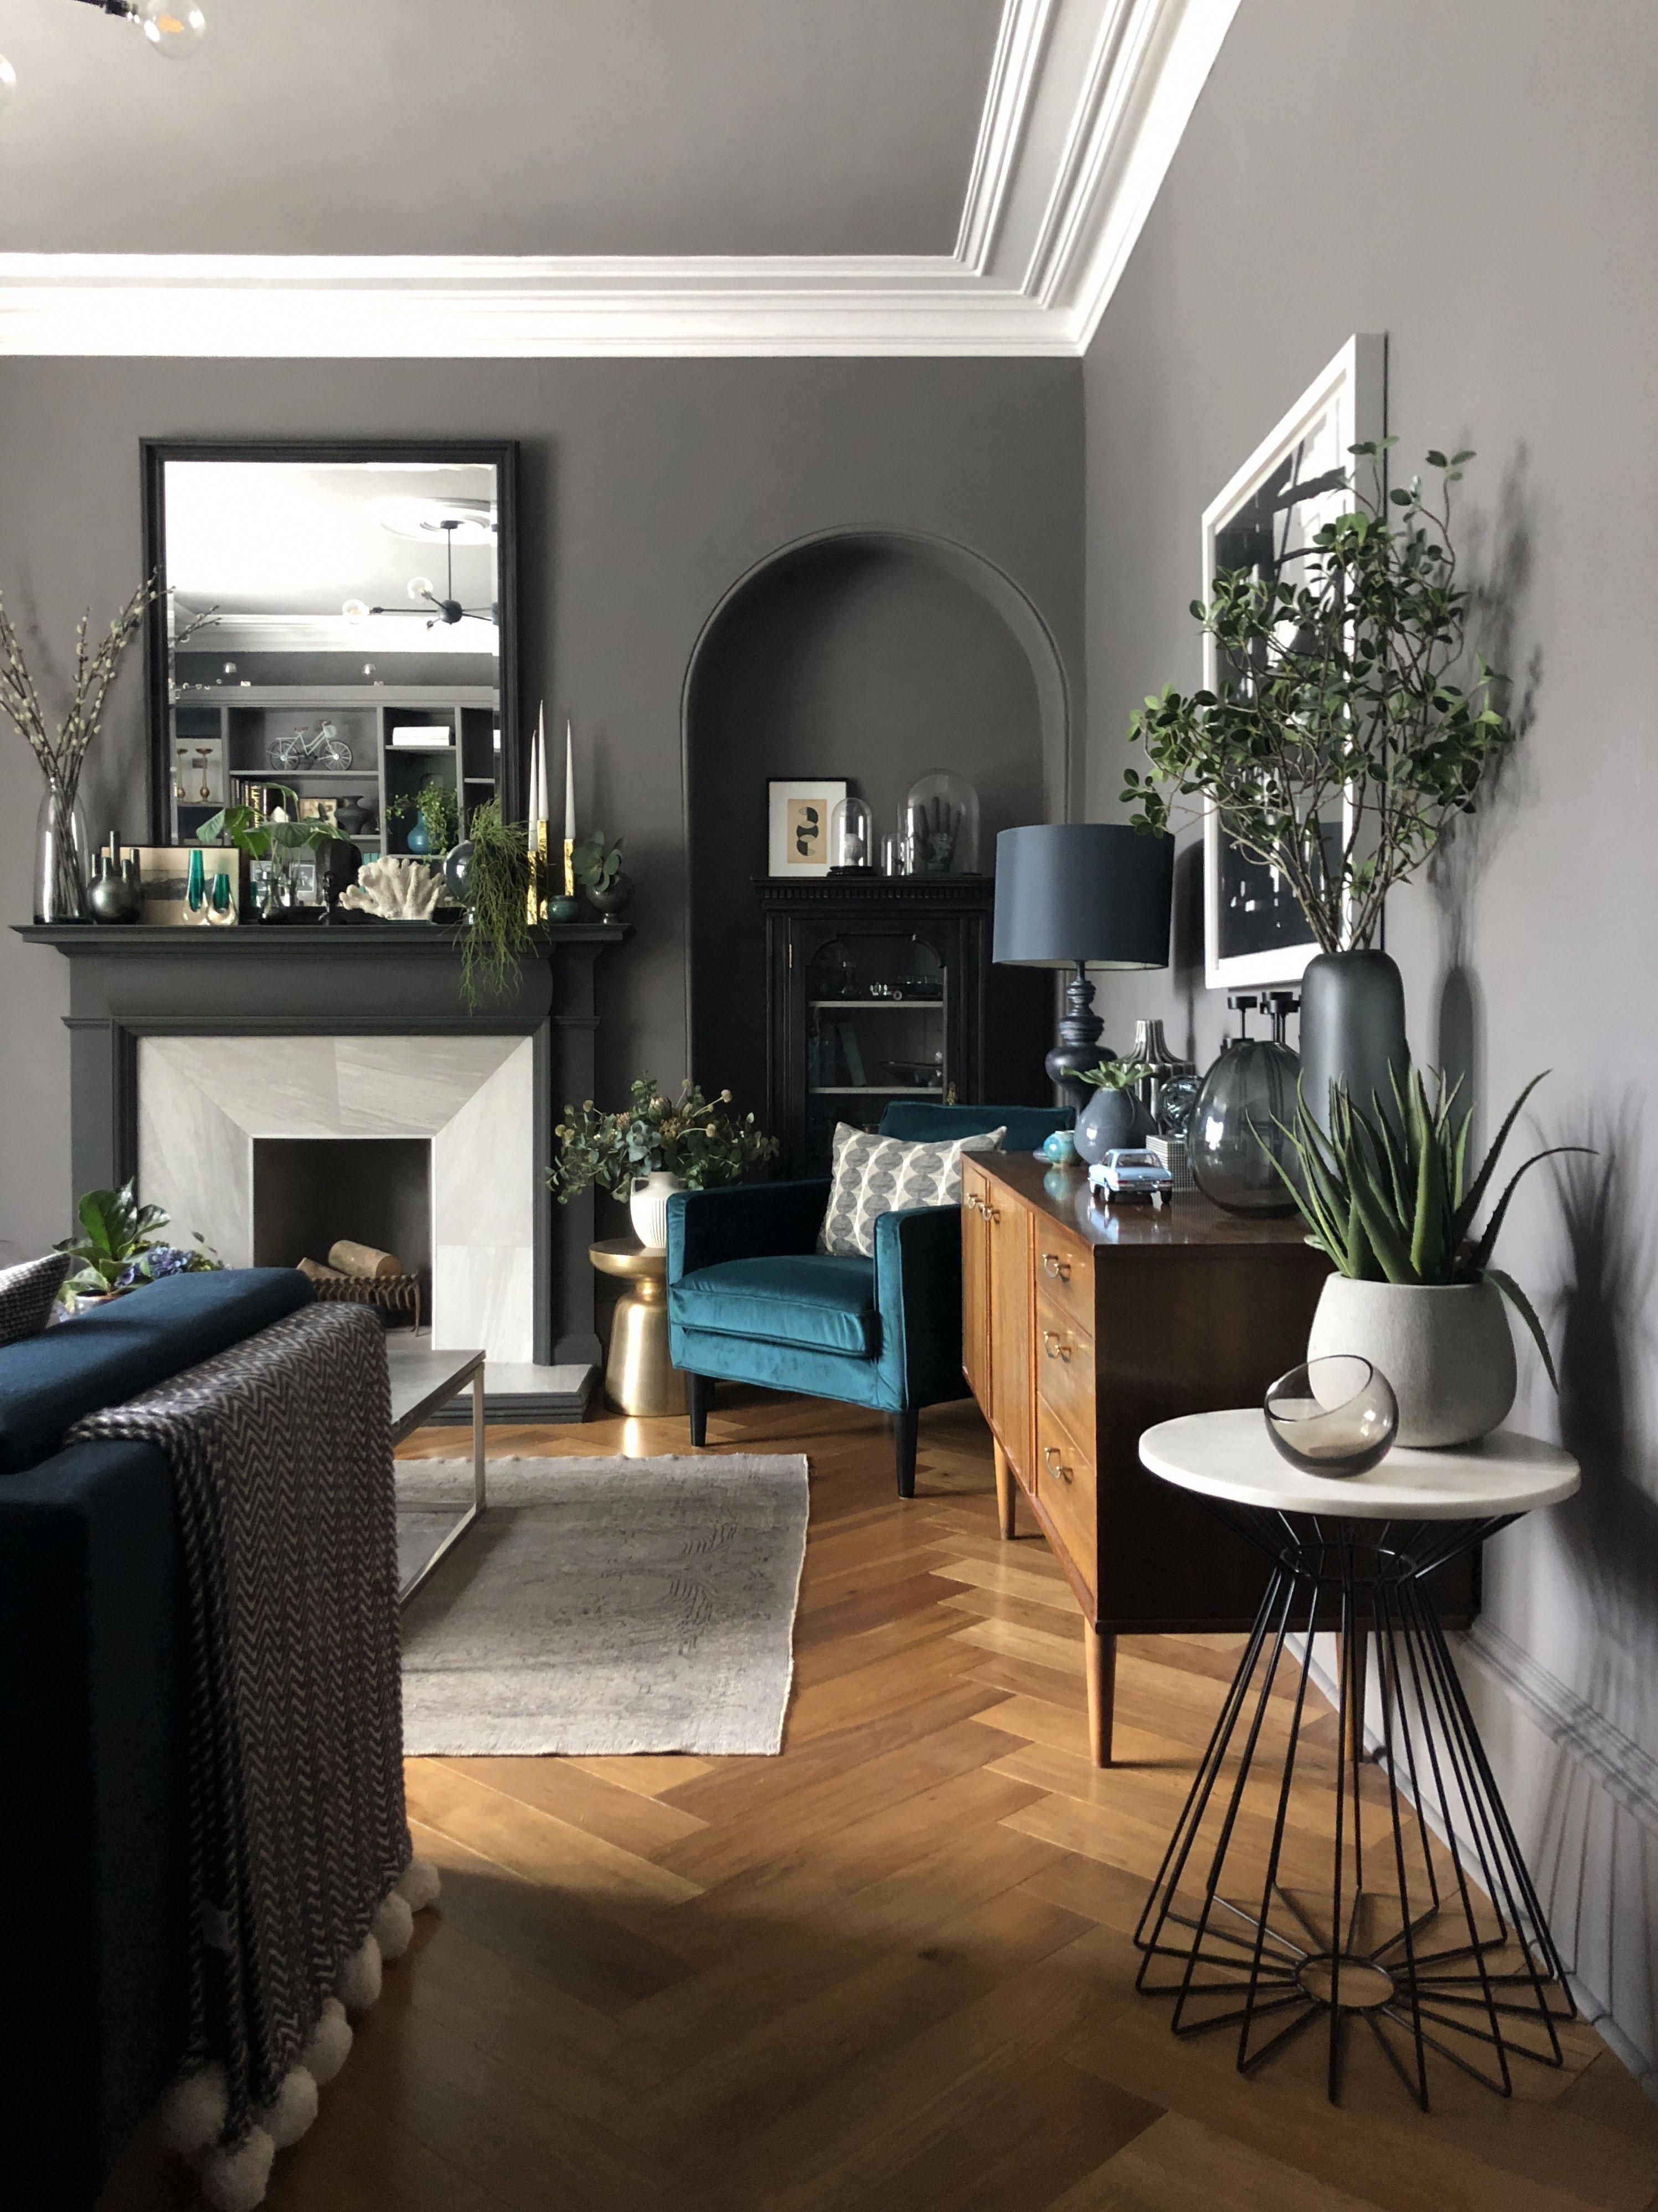 Grey Living Room Walls In Whistling Whipoorwill By Valspar U K Oak Herringbone Floor Adds Warmth A Grey Walls Living Room Living Room Grey Teal Living Rooms